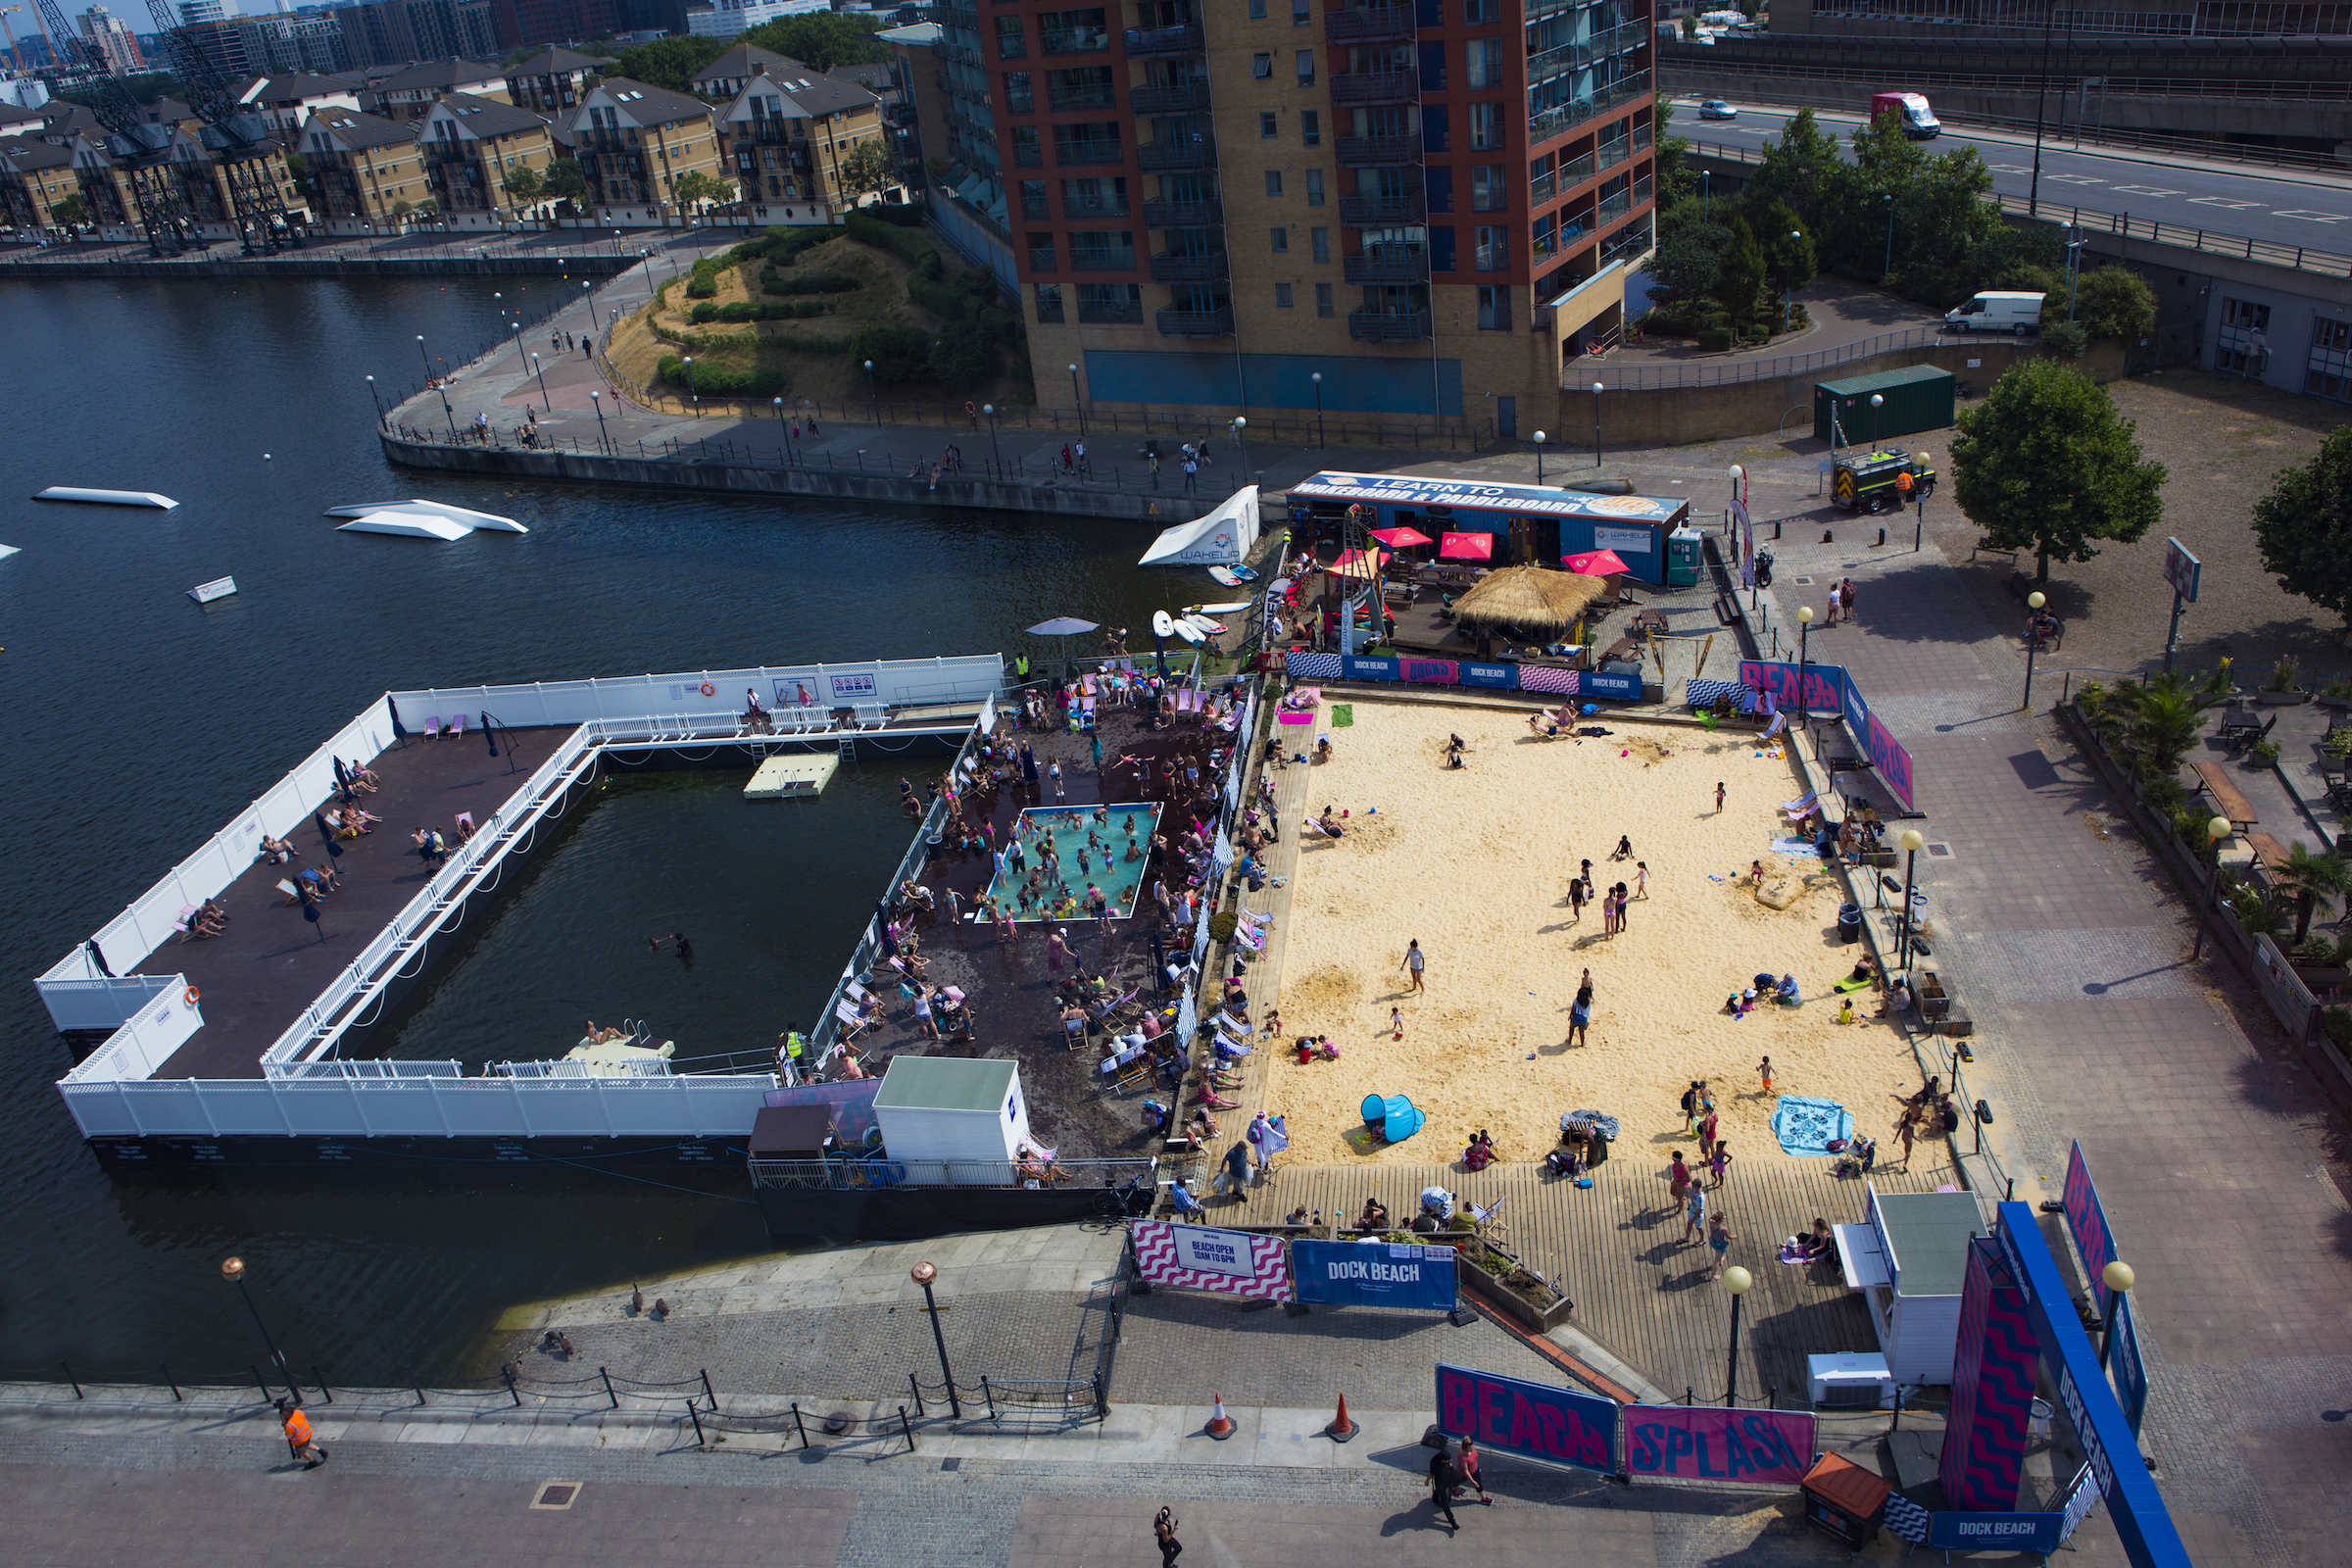 An overhead image of the beach and pool at the Royal Docks